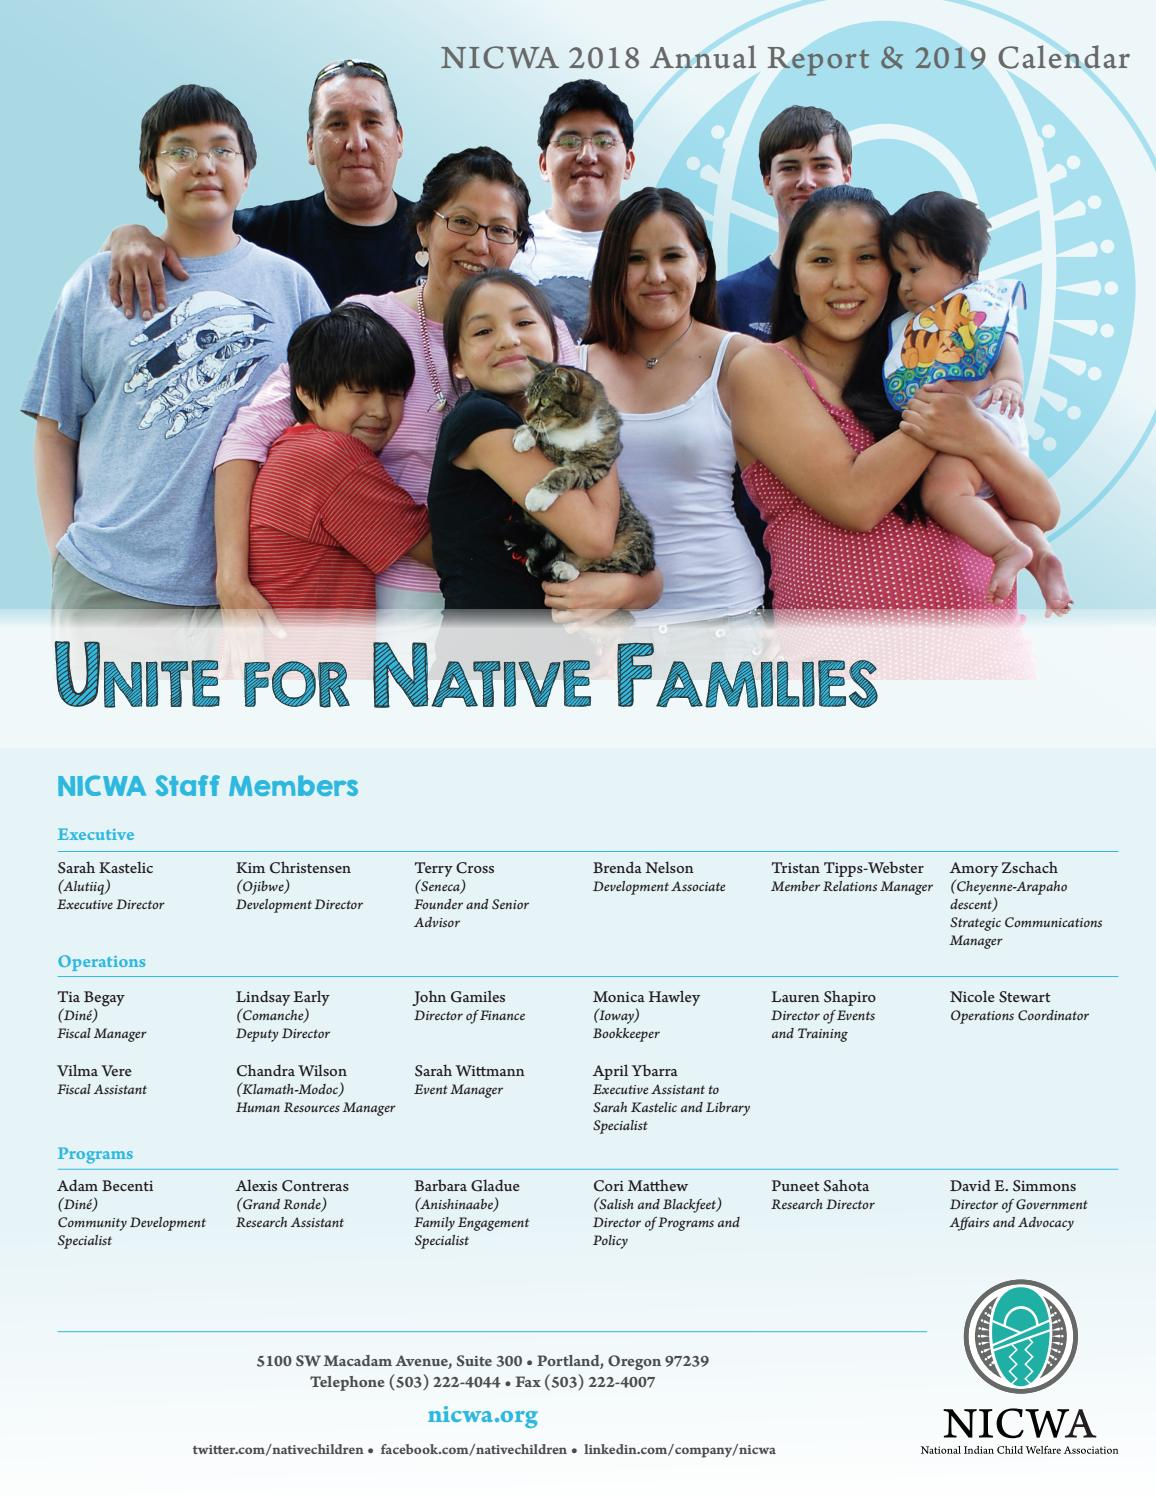 NICWA 2018 Annual Report by National Indian Child Welfare